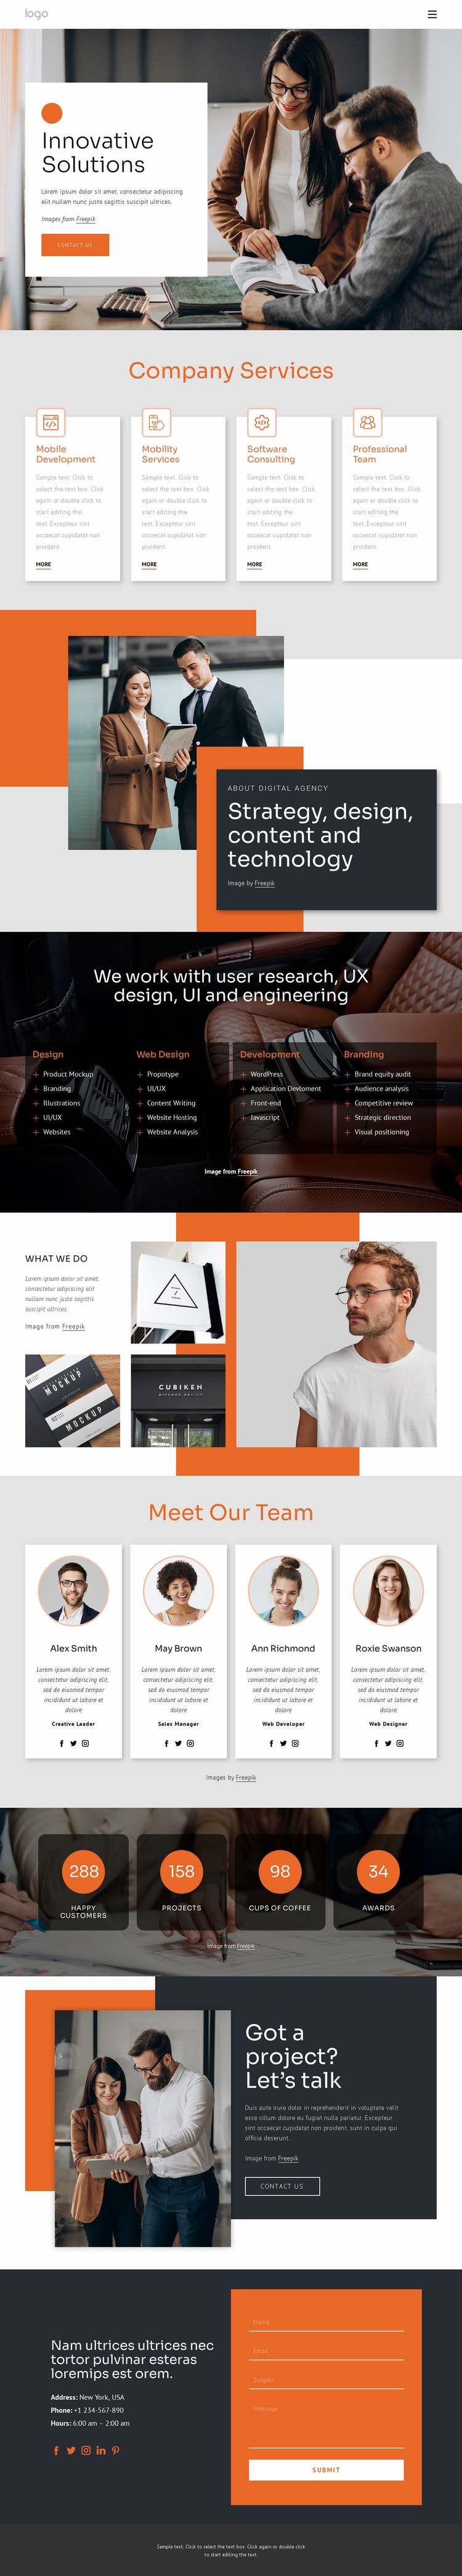 Innovative solutions and support Website Template